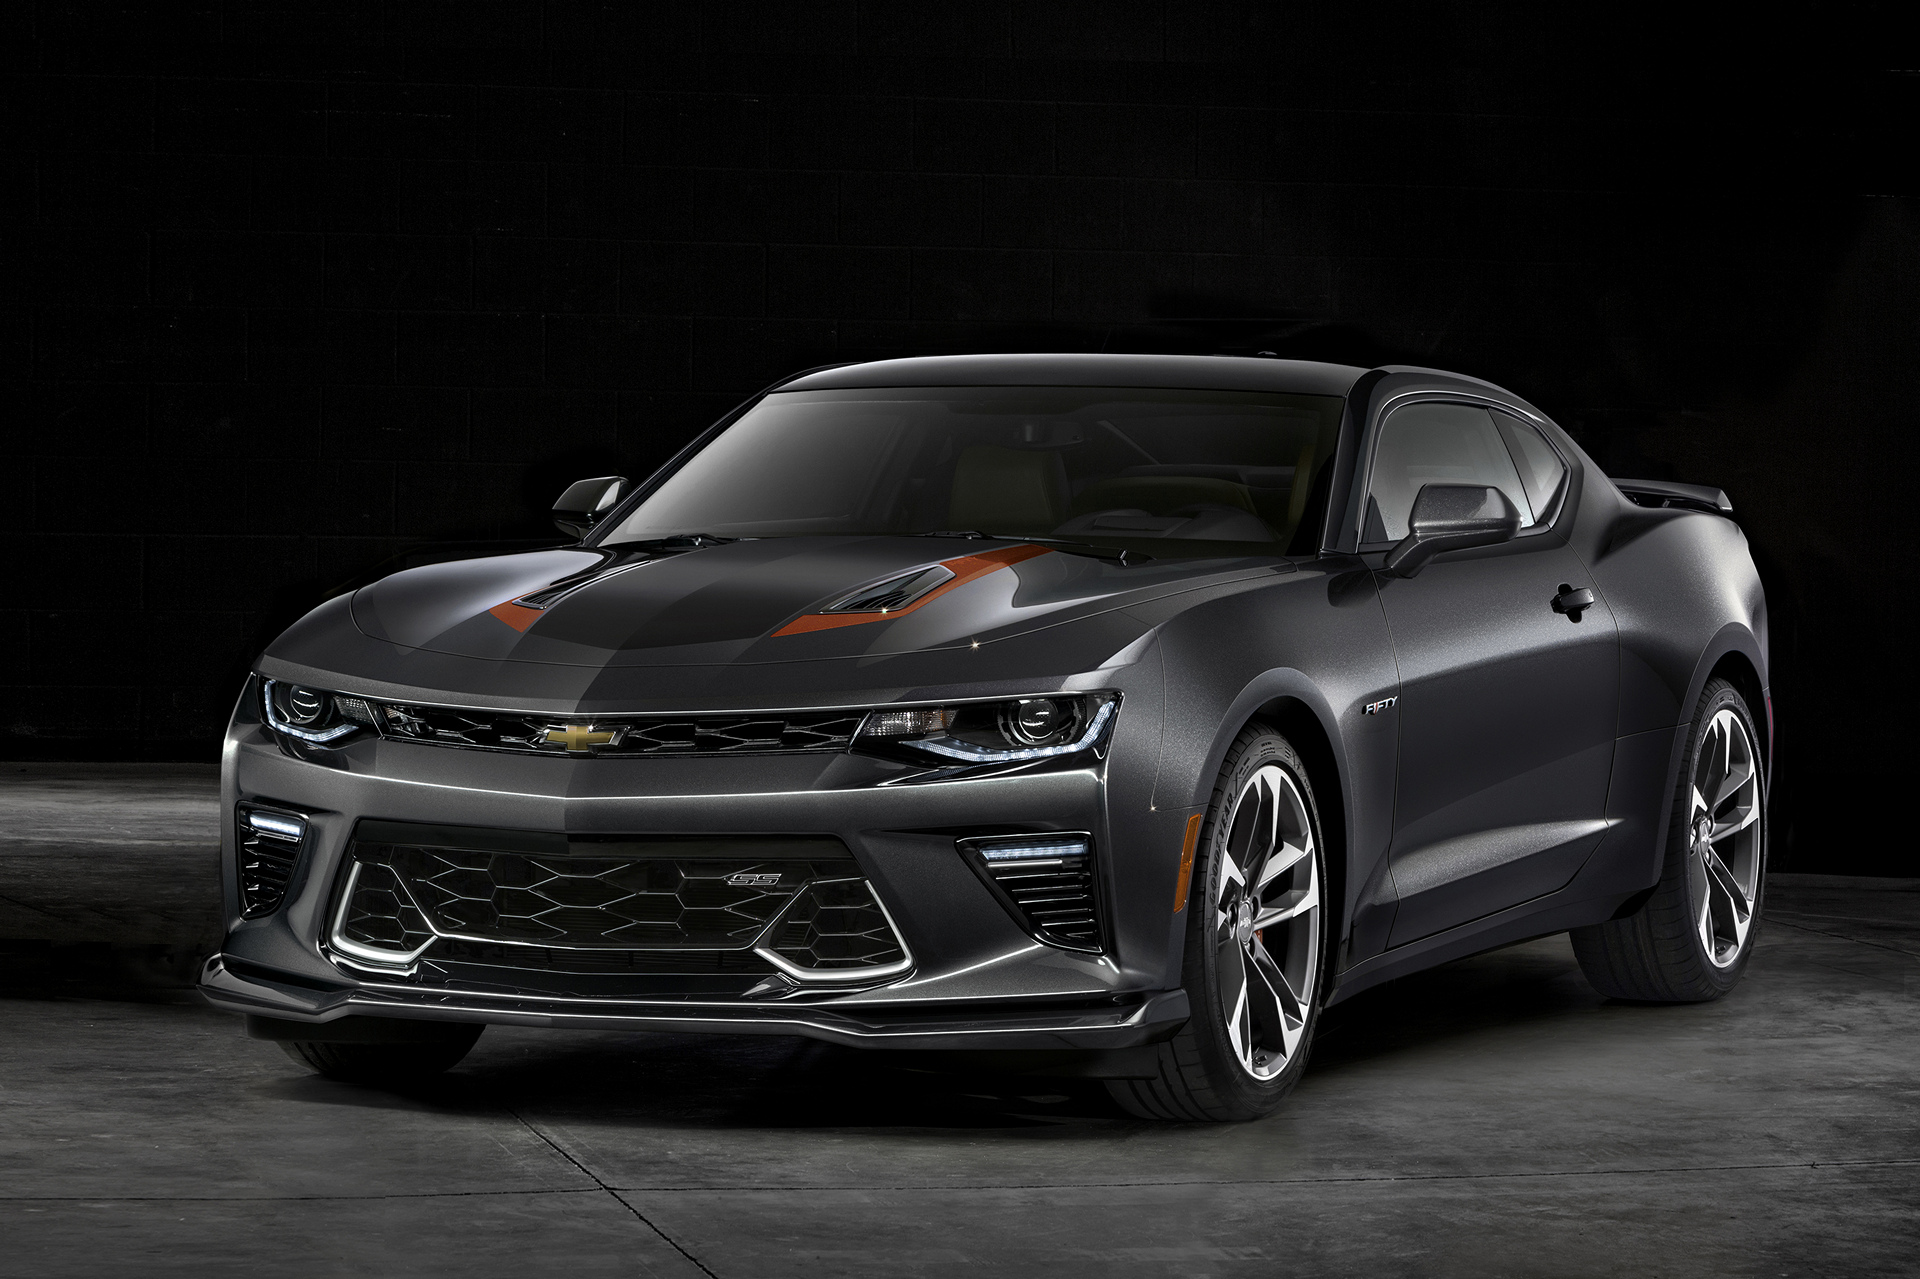 2017 Camaro 50th Anniversary Special Edition © General Motors